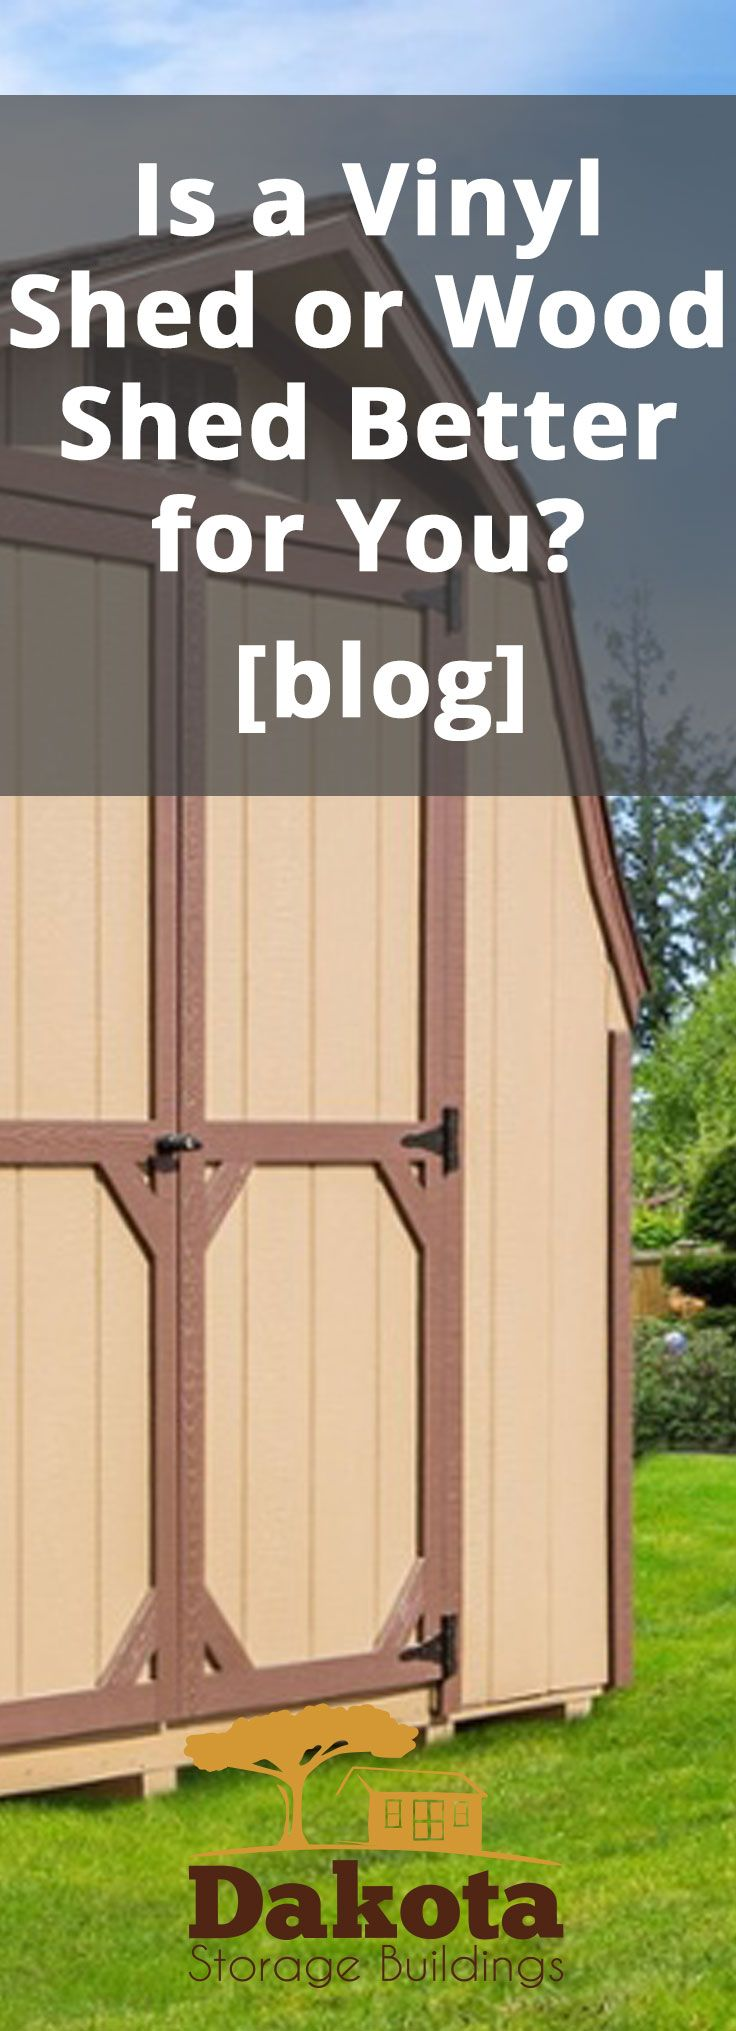 Both vinyl sheds and wood sheds are excellent optionsbut which siding type  is best